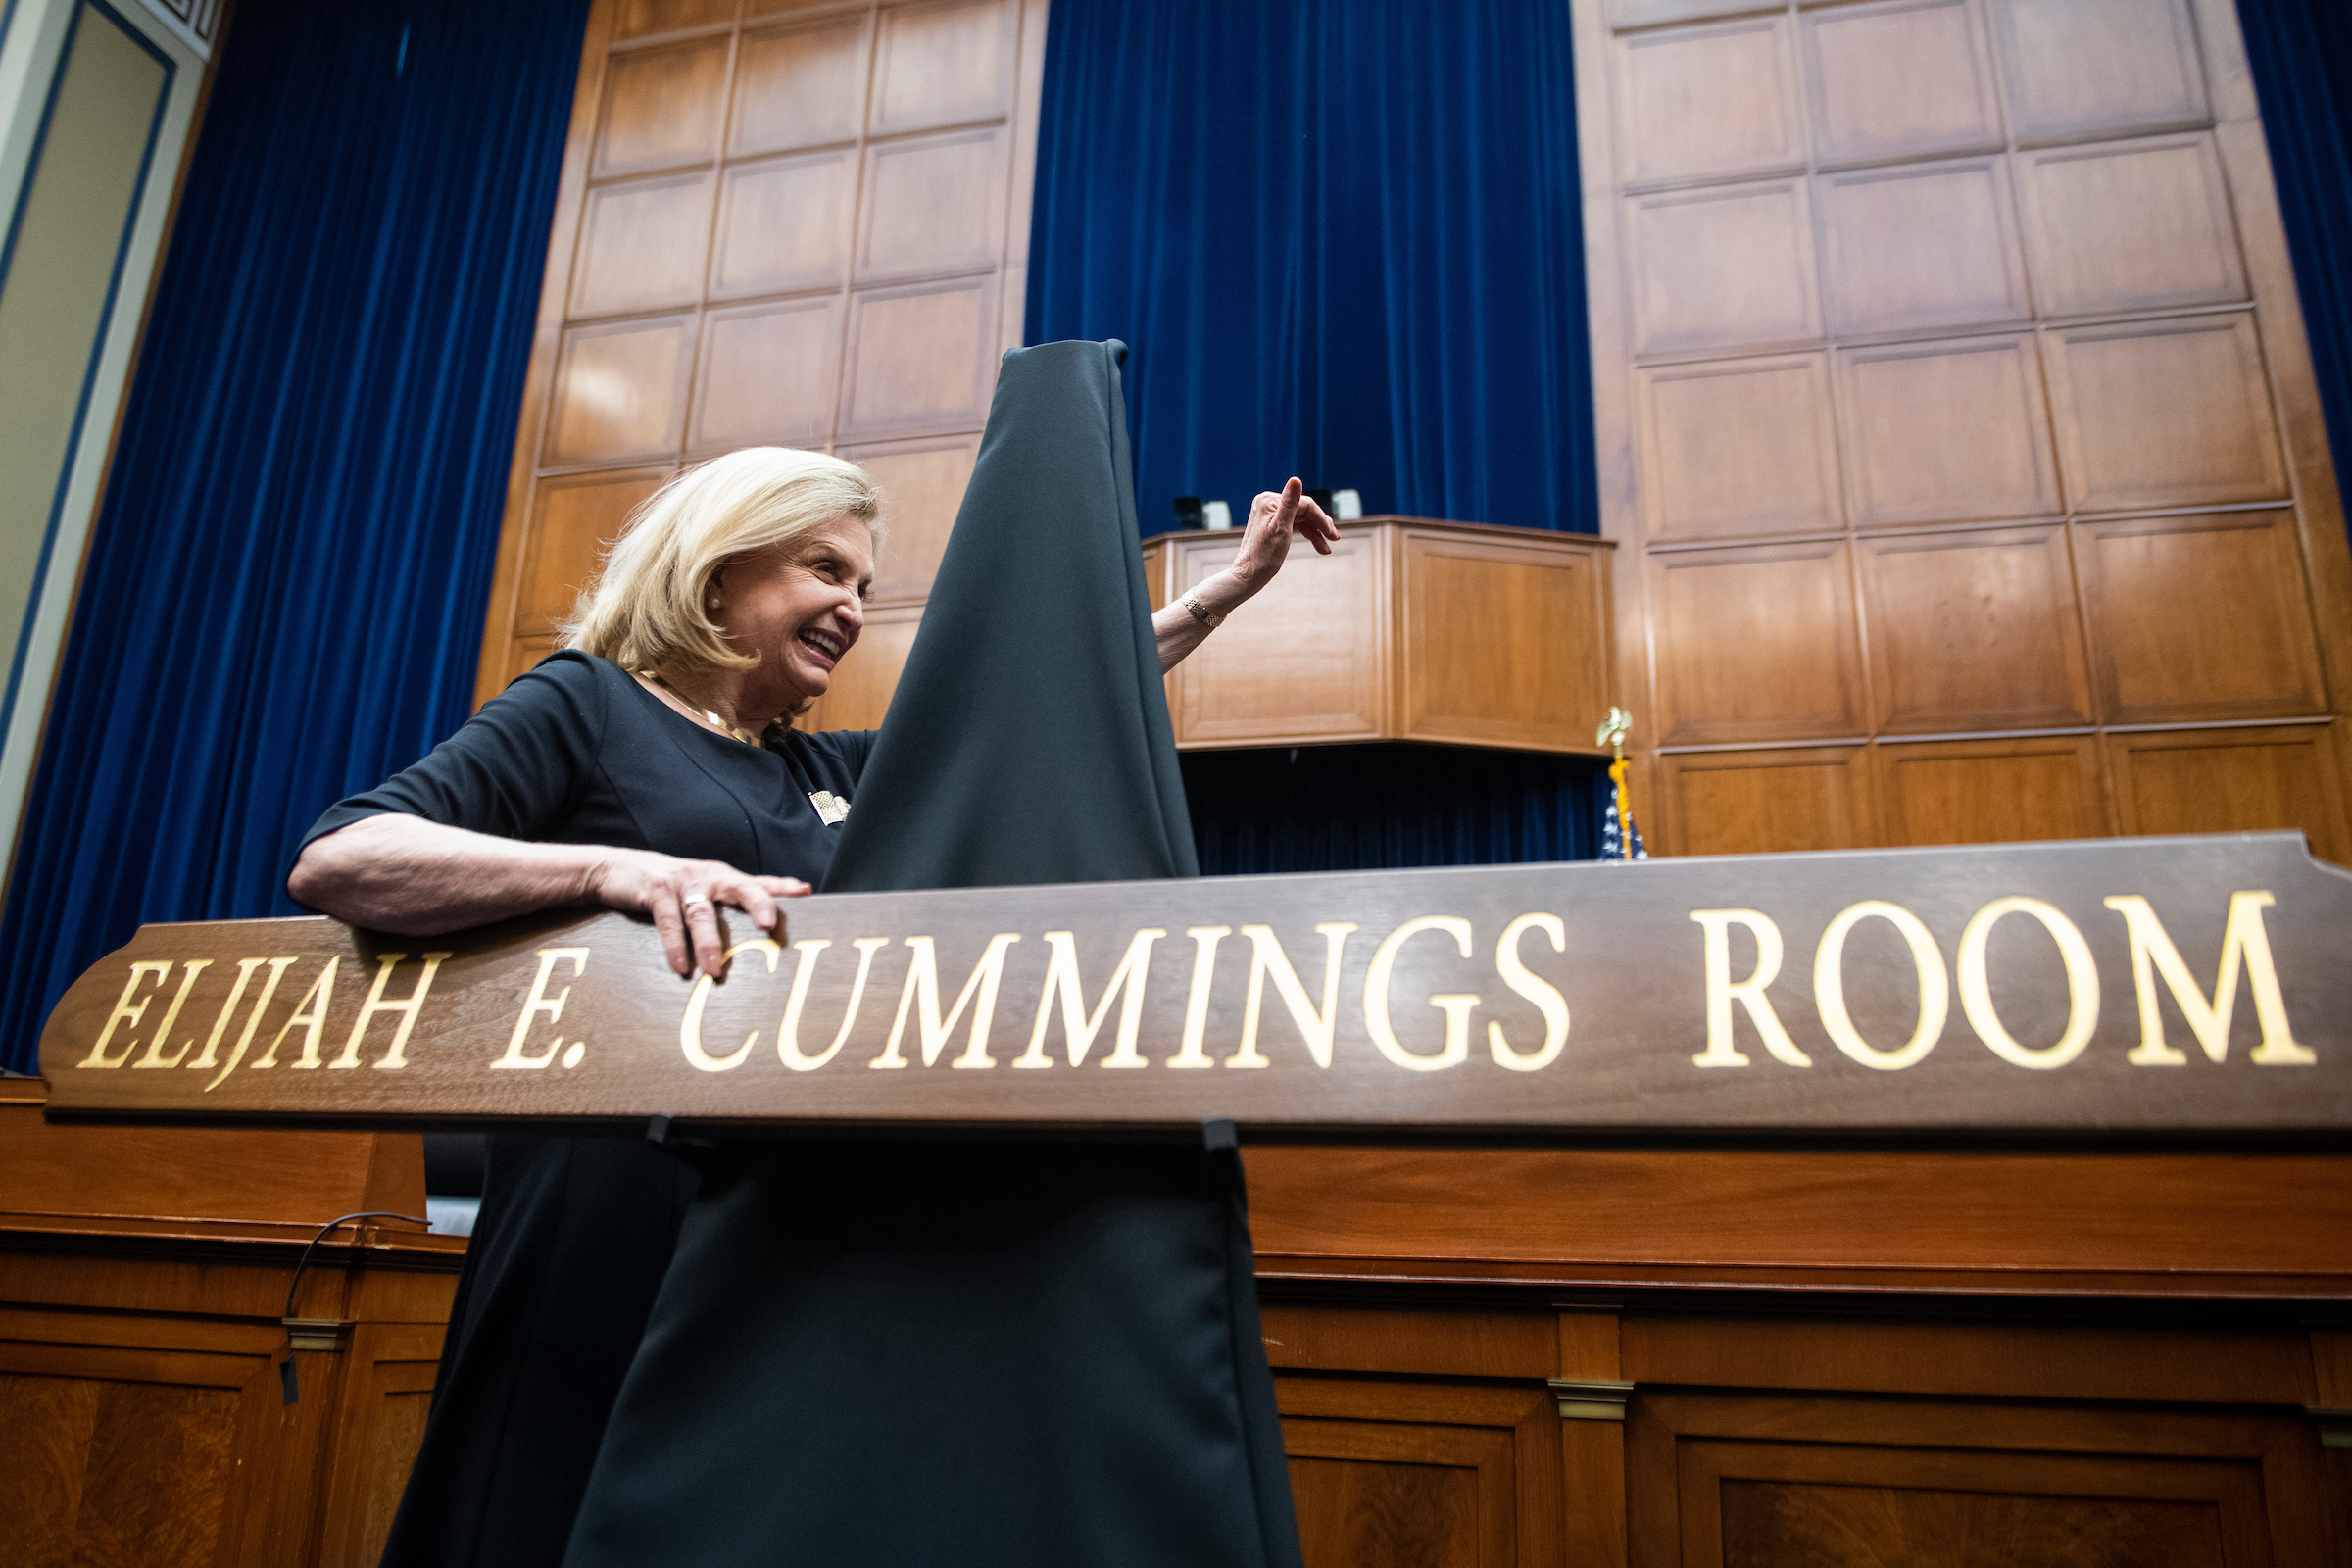 Chairwoman Carolyn B. Maloney, D-N.Y., attends an event to dedicate the Oversight and Reform Committee hearing room to the late Chairman Elijah E. Cummings, D-Md., in the Rayburn Building on Thursday, February 27, 2020.  (Tom Williams/CQ Roll Call)